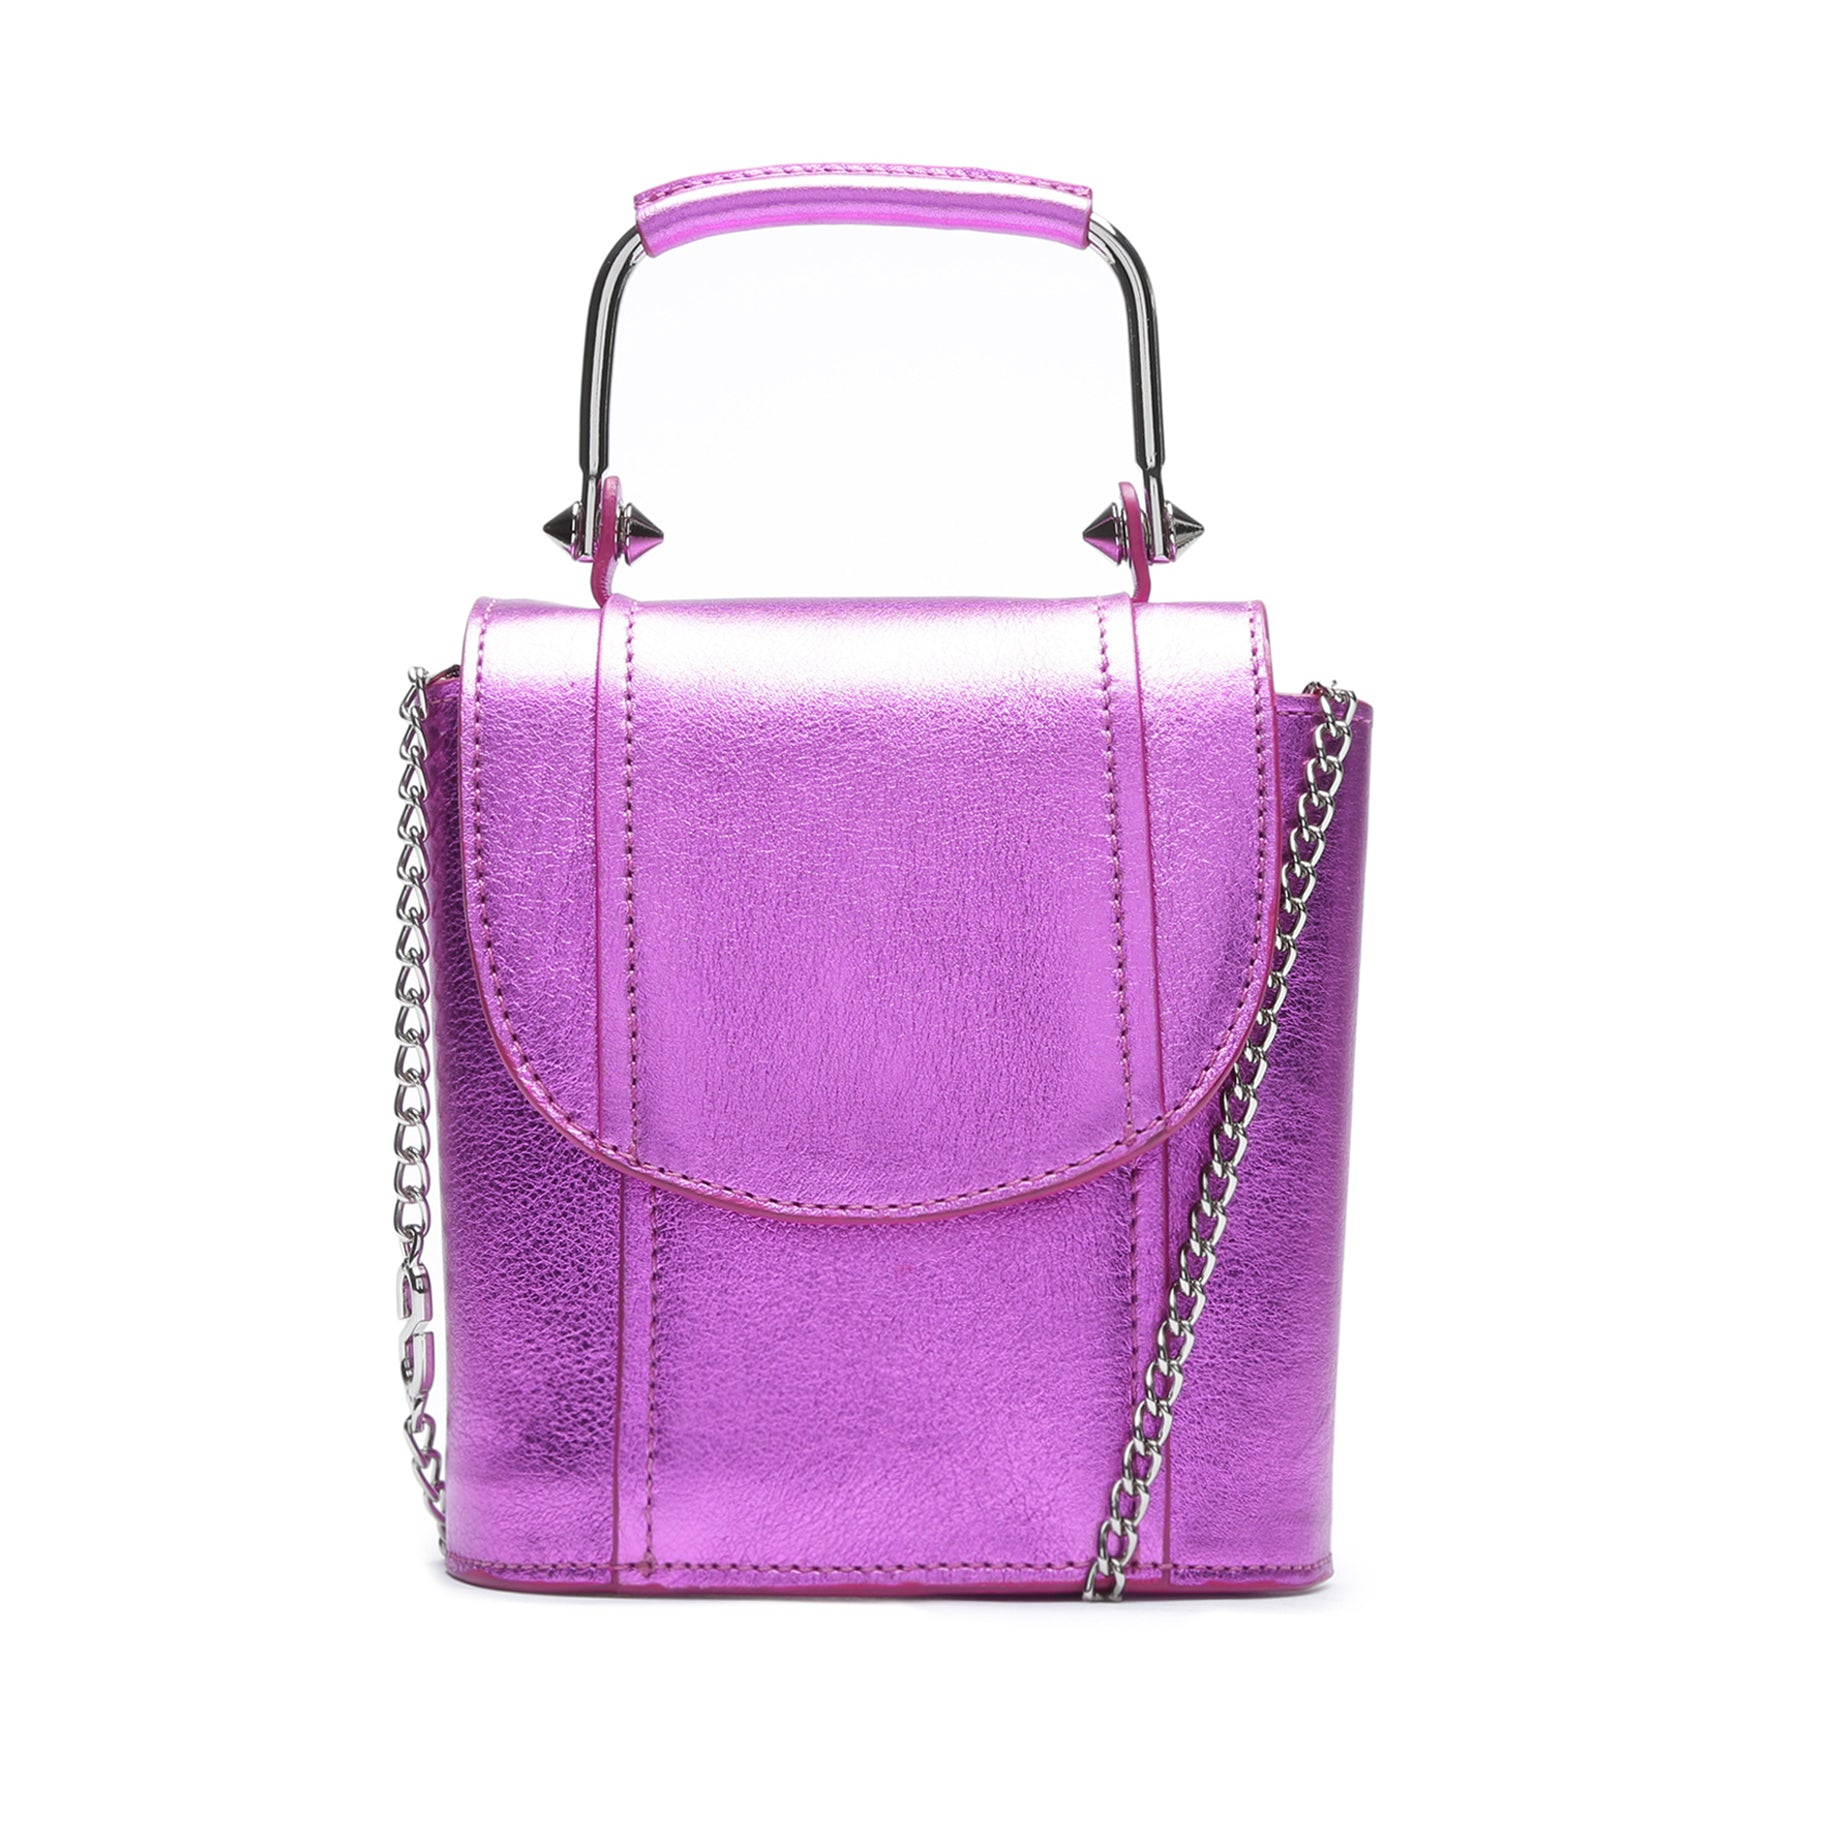 Crush Metallic Leather Bag